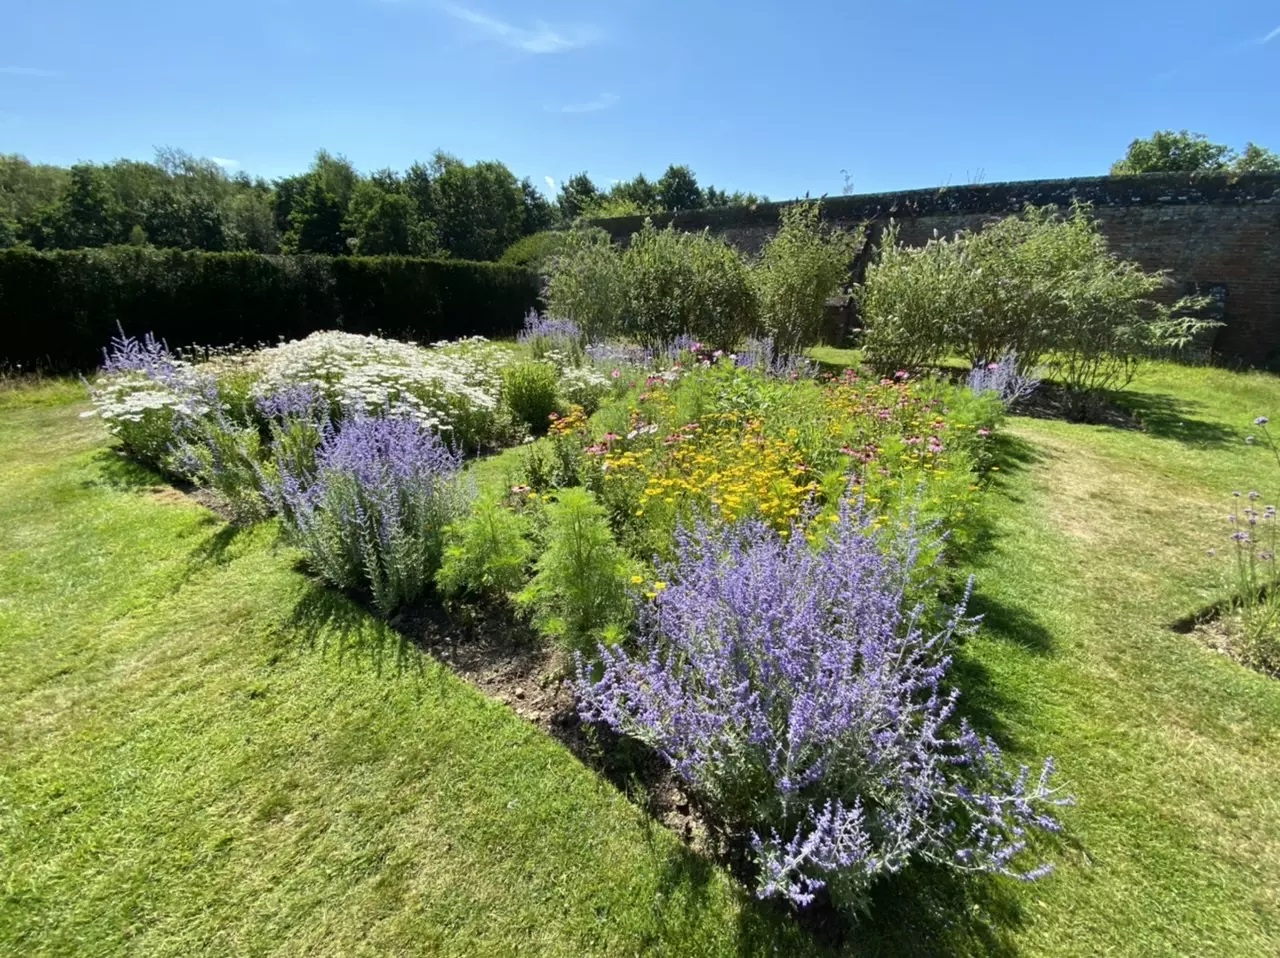 The wonderful Lower Garden is popular with bees and butterflies